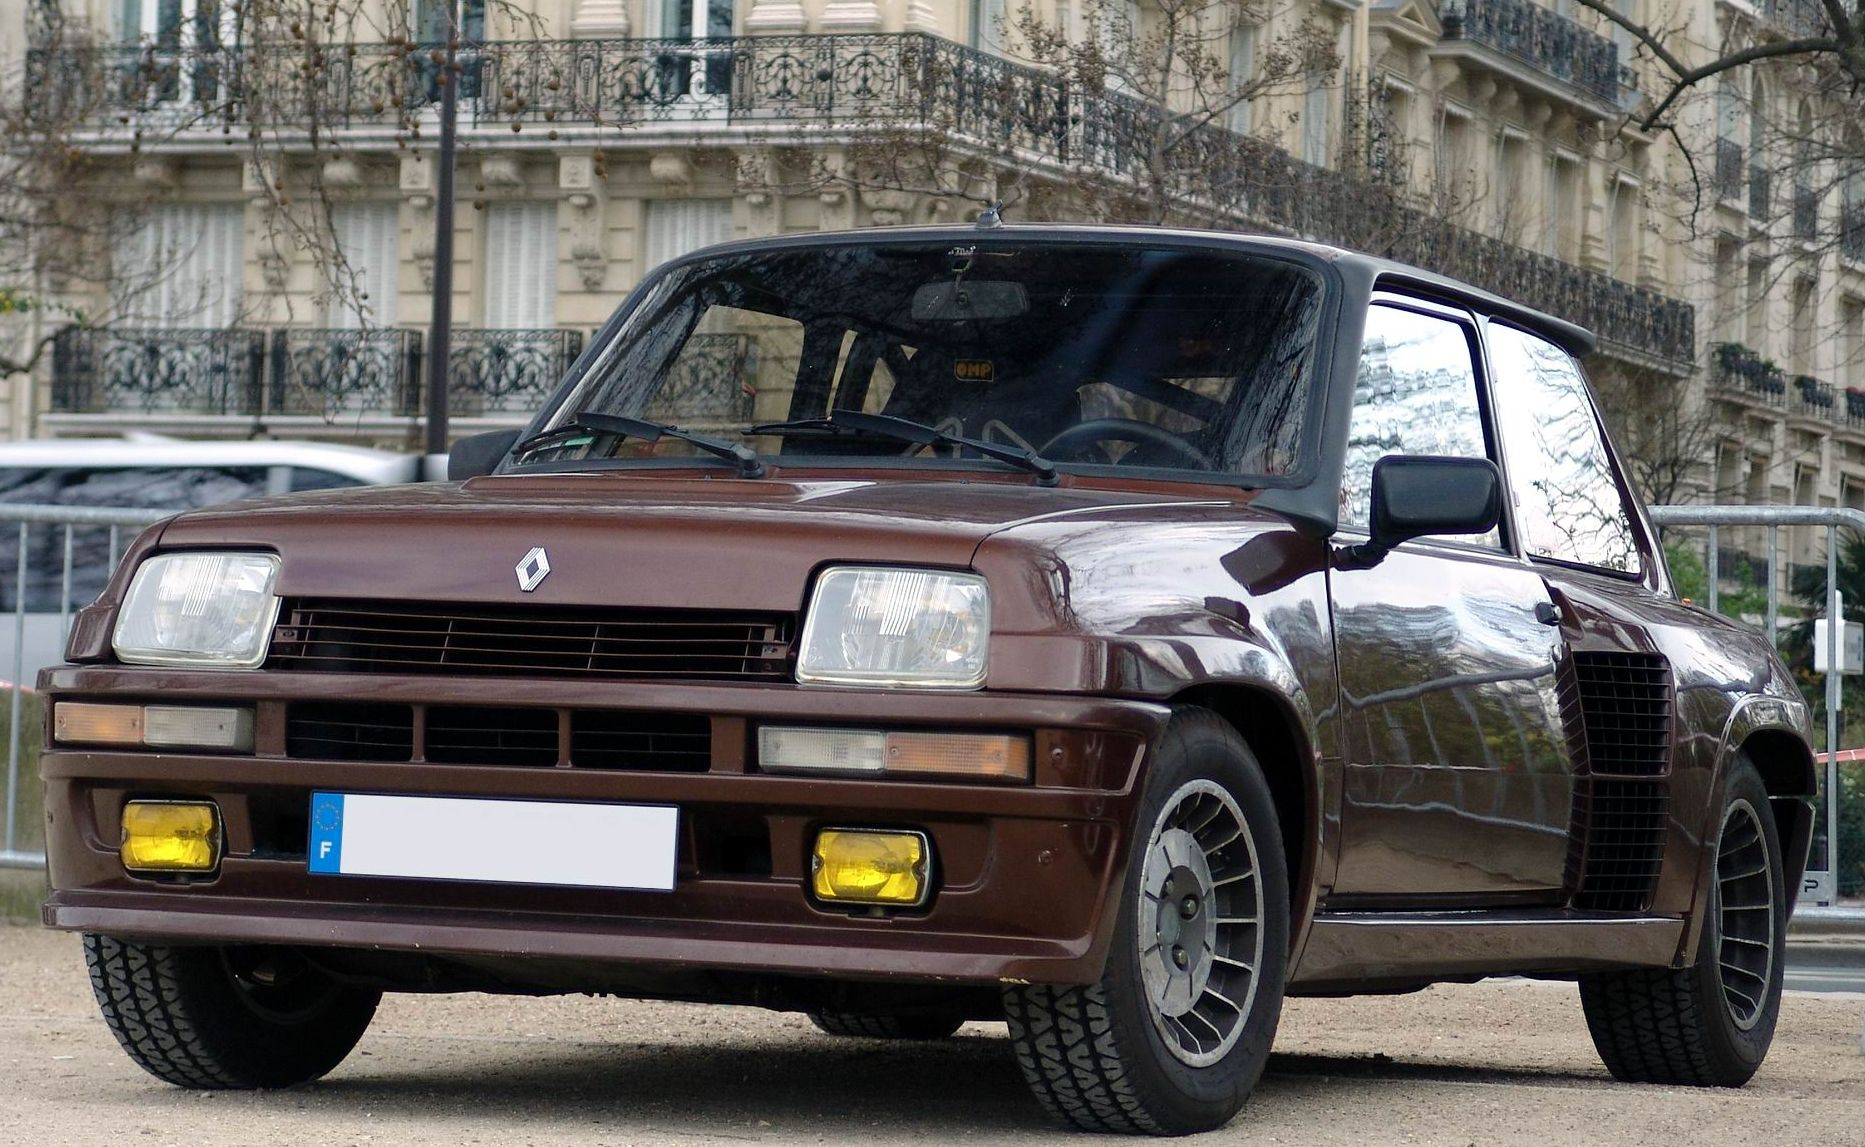 renault 5 turbo 2 sport car. Black Bedroom Furniture Sets. Home Design Ideas